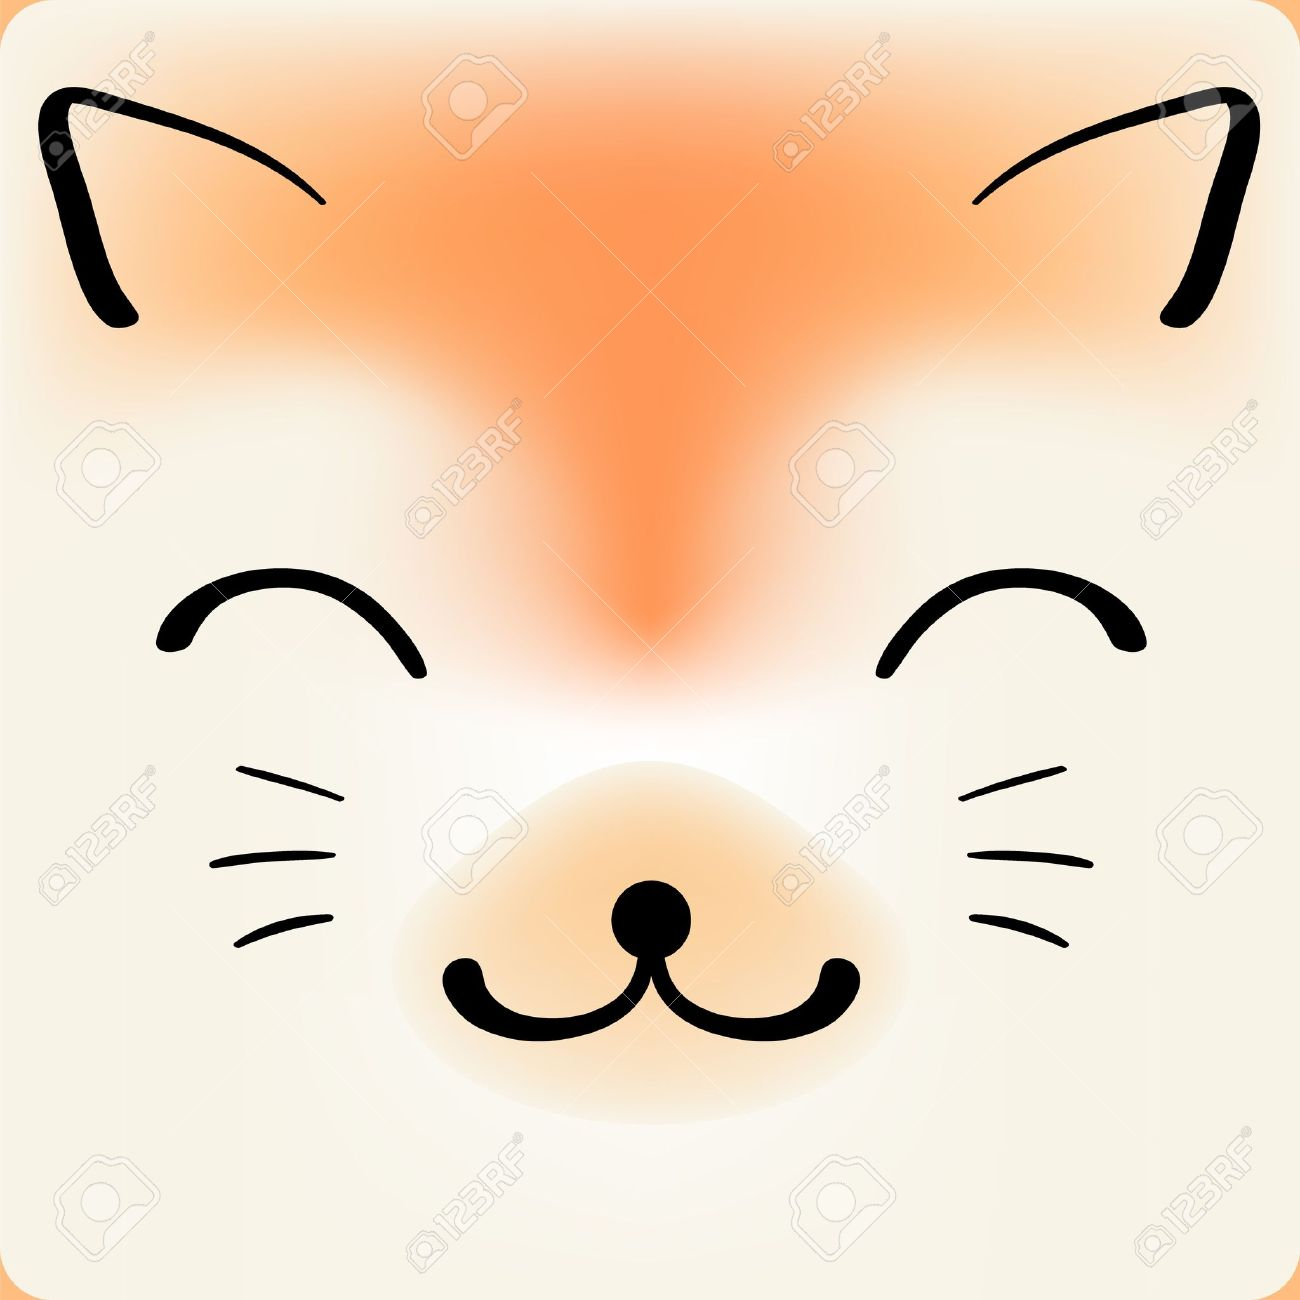 Cute Cartoon Cat Face Vector Background For A Card Royalty Free